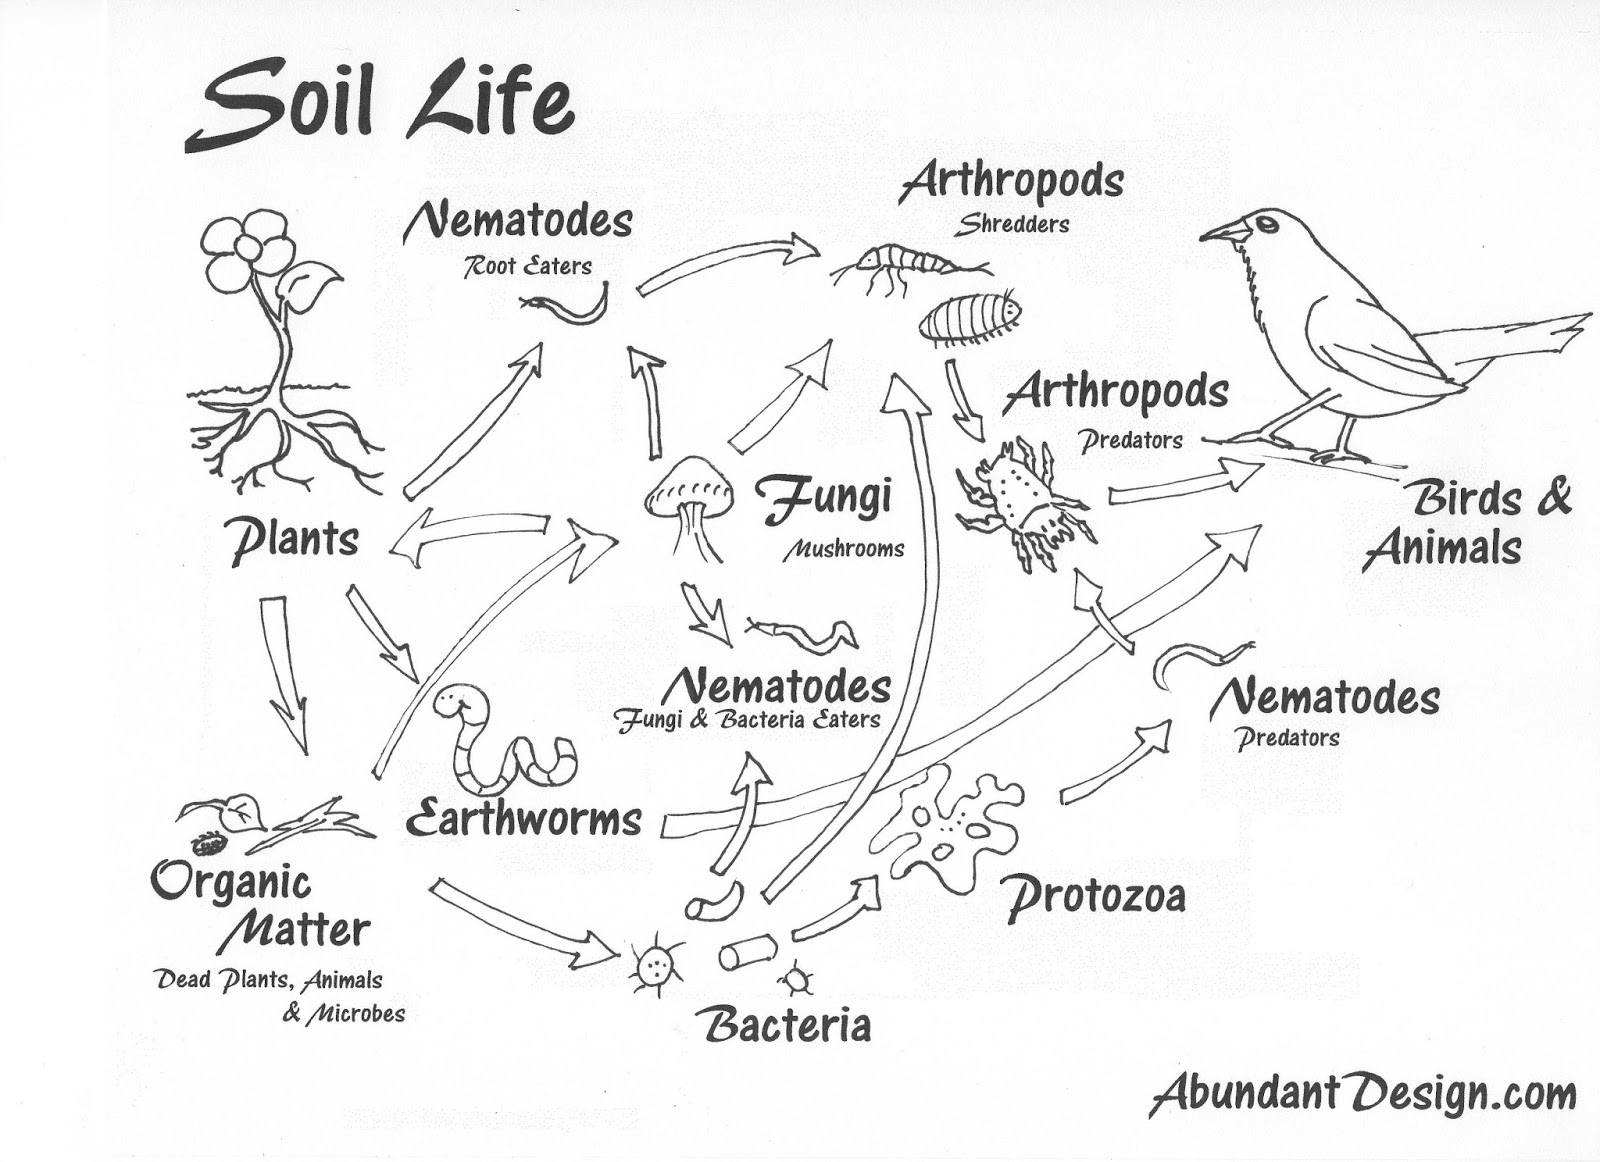 Abundant Design: Building Soil for Health, Climate & Profit